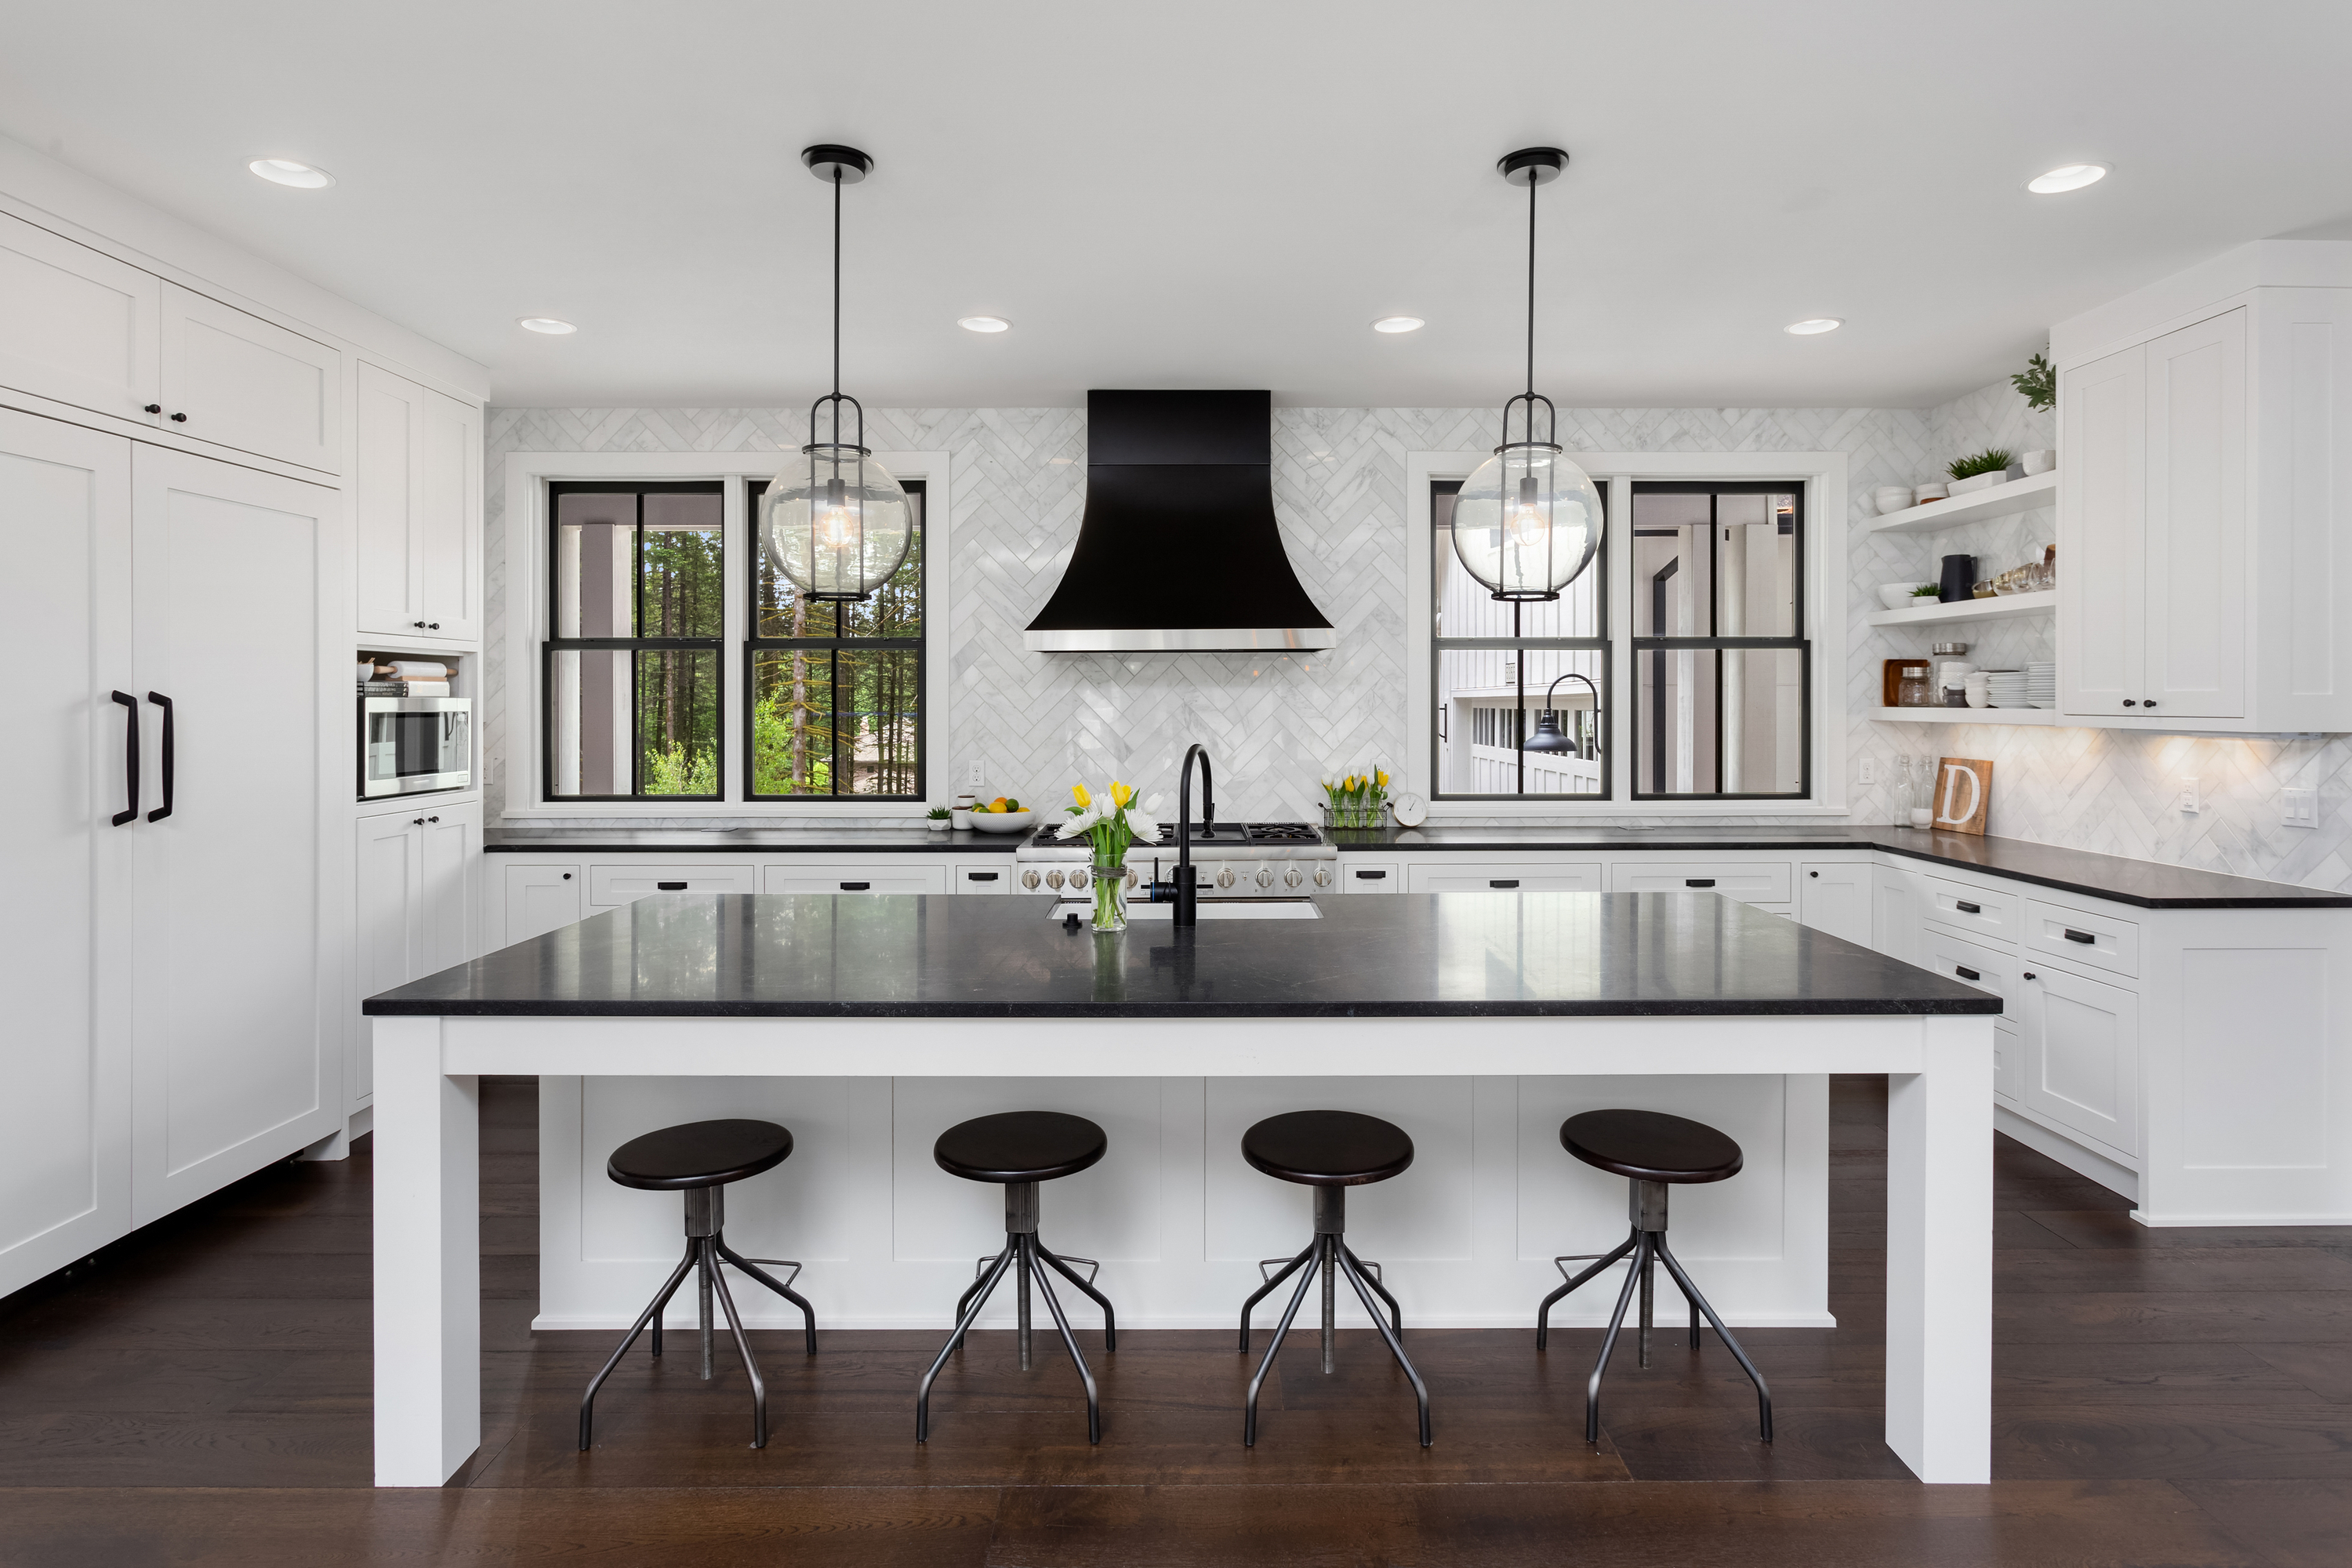 Opposites Attract White Cabinets Black Granite How To Build It